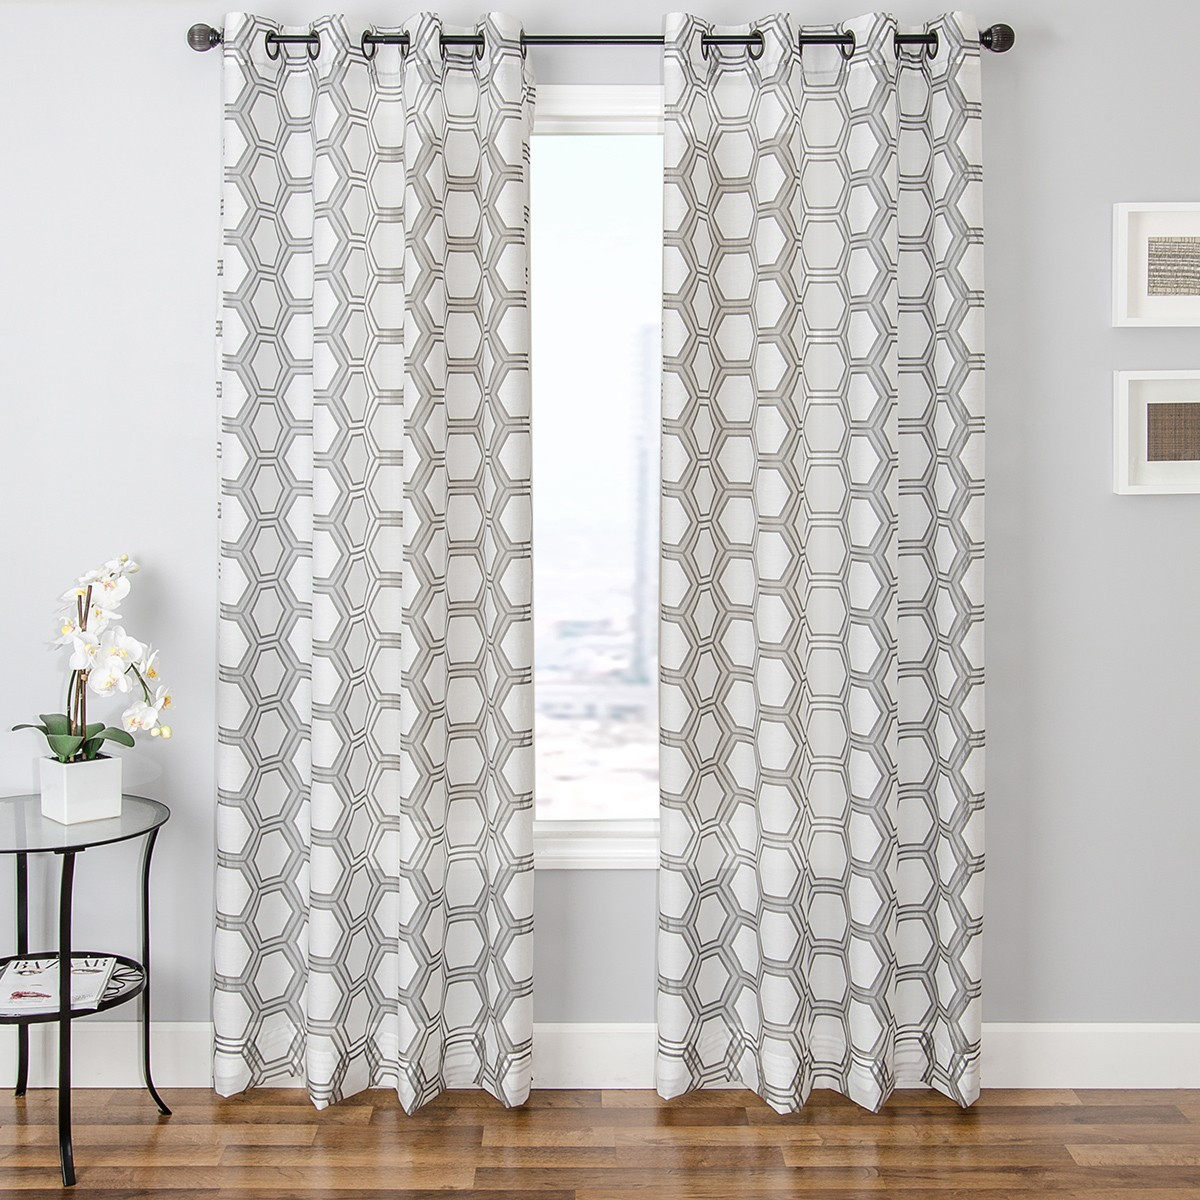 White And Silver Kitchen Curtains